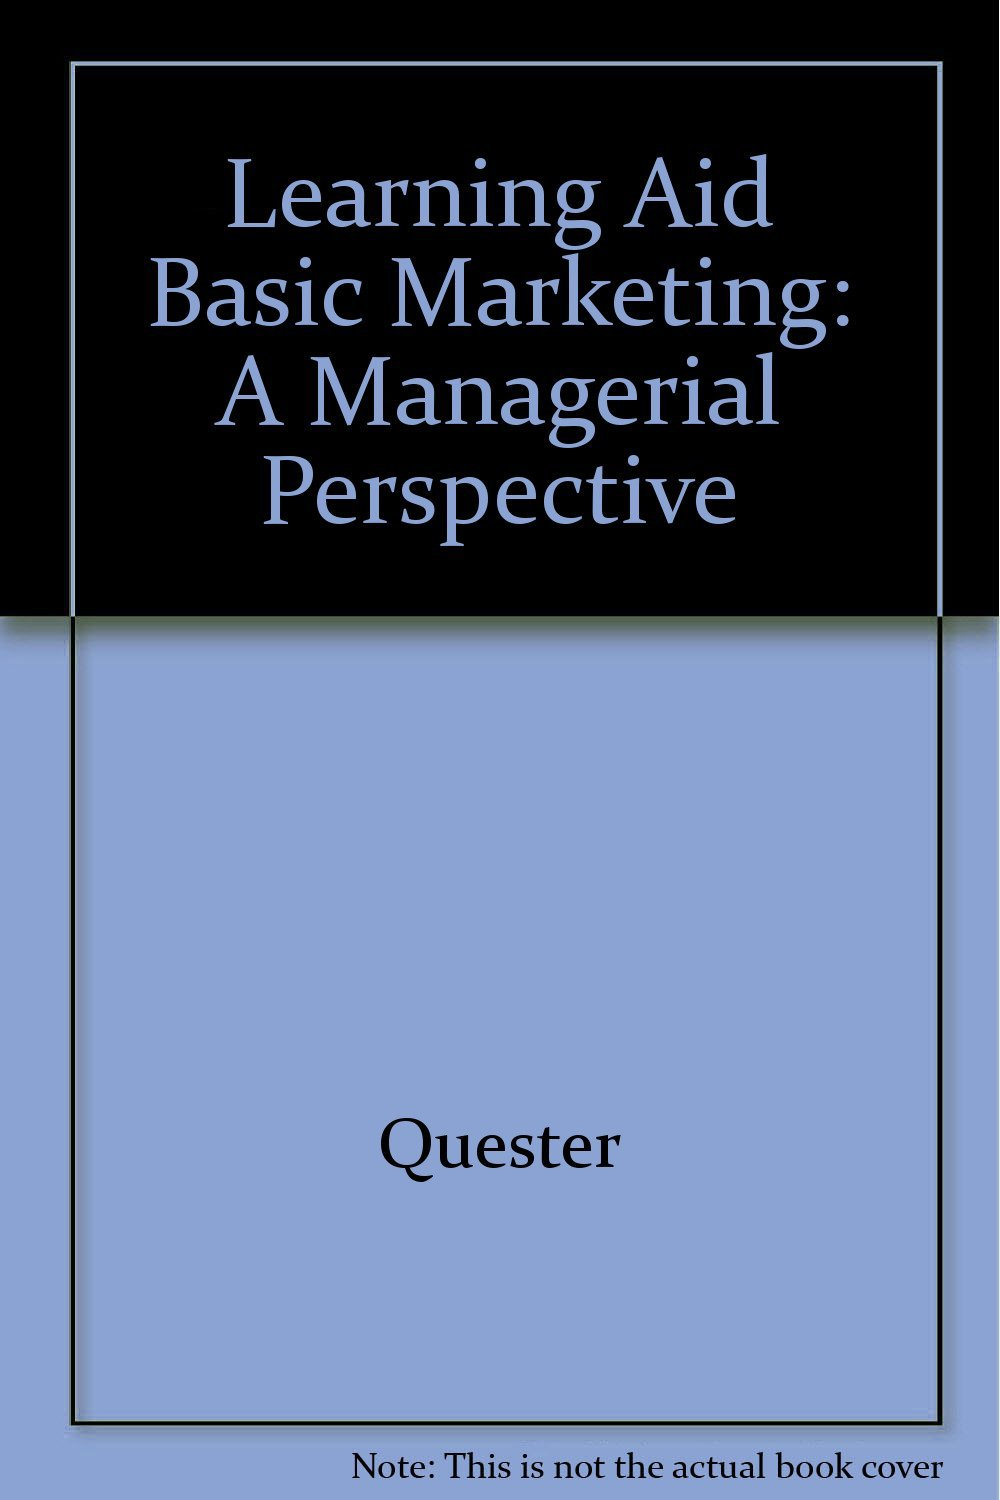 Learning Aid Basic Marketing: A Managerial Perspective